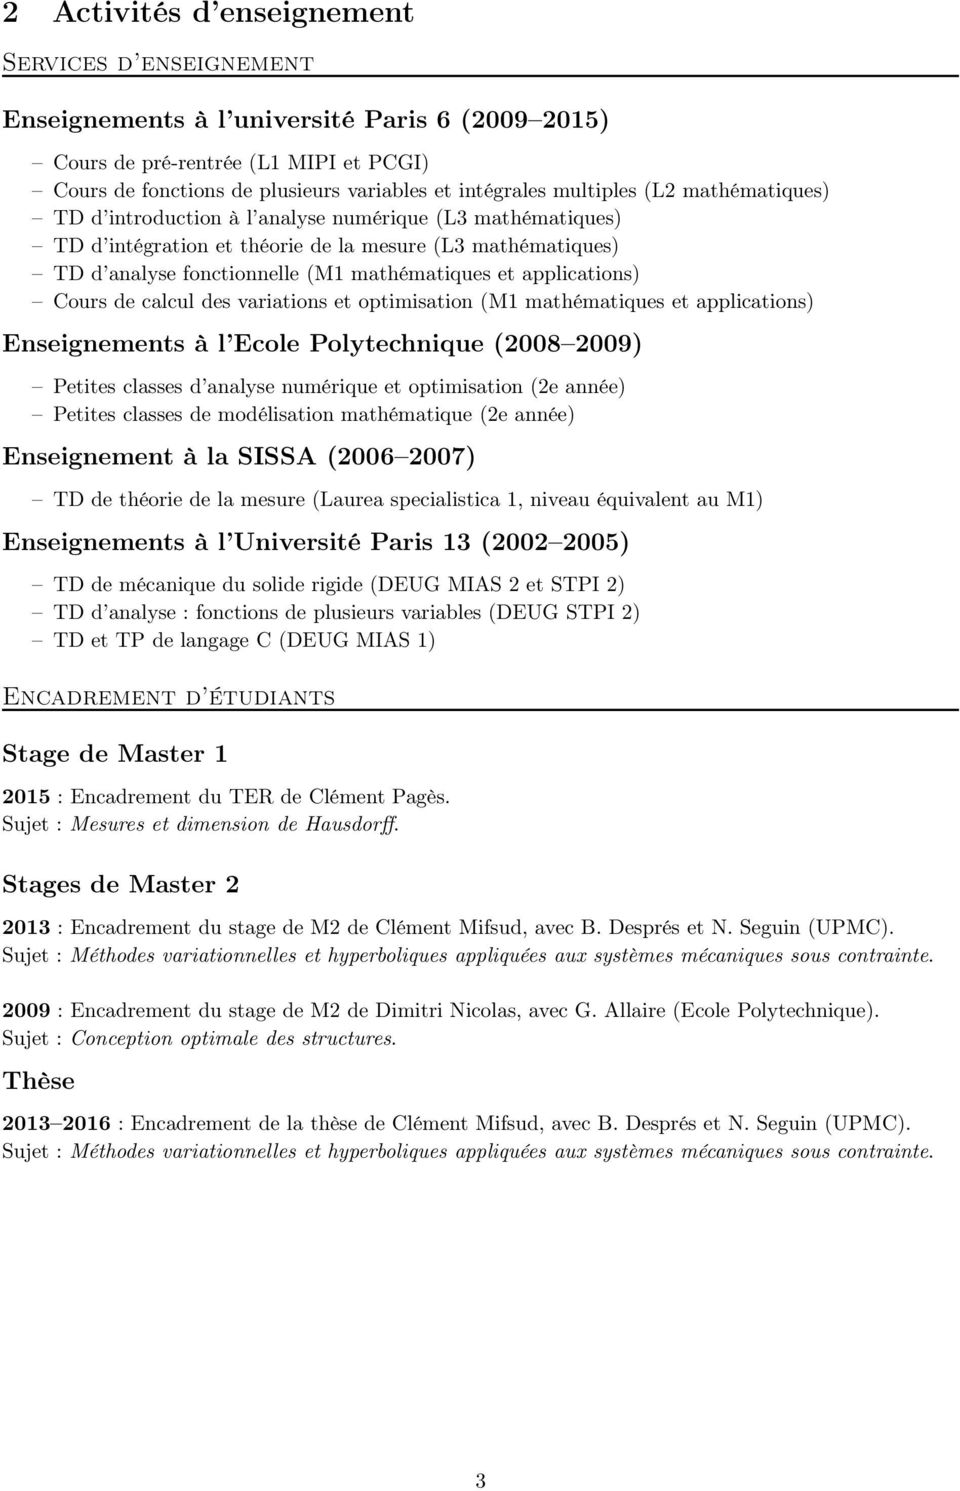 applications) Cours de calcul des variations et optimisation (M1 mathématiques et applications) Enseignements à l Ecole Polytechnique (2008 2009) Petites classes d analyse numérique et optimisation